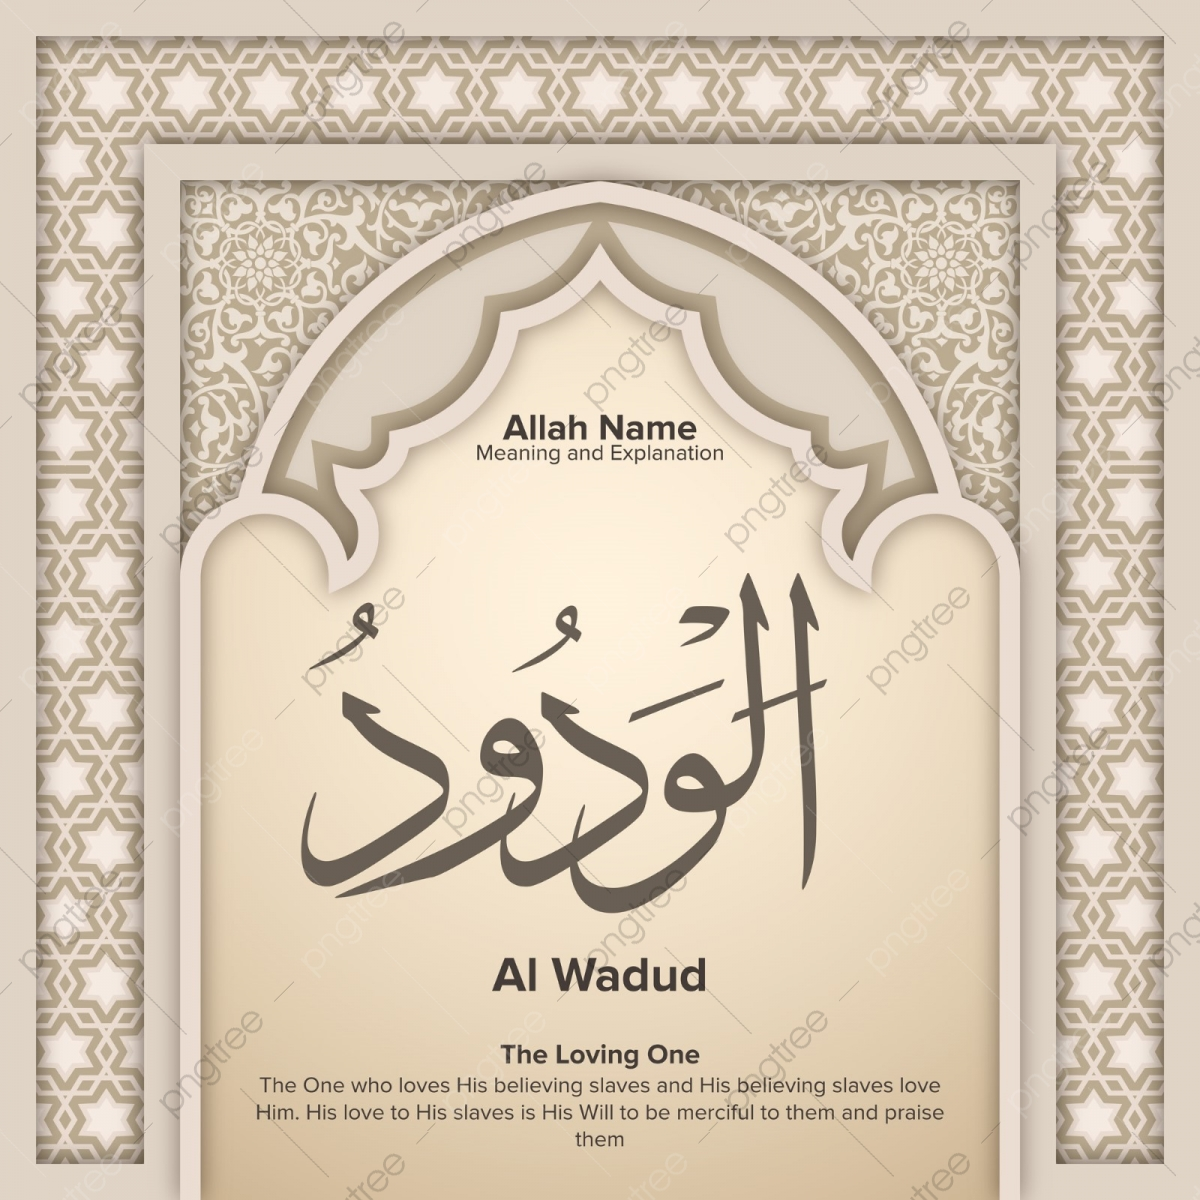 Al Wadud ,99 Names Of Allah With Meaning And Explanation, Al Rehman